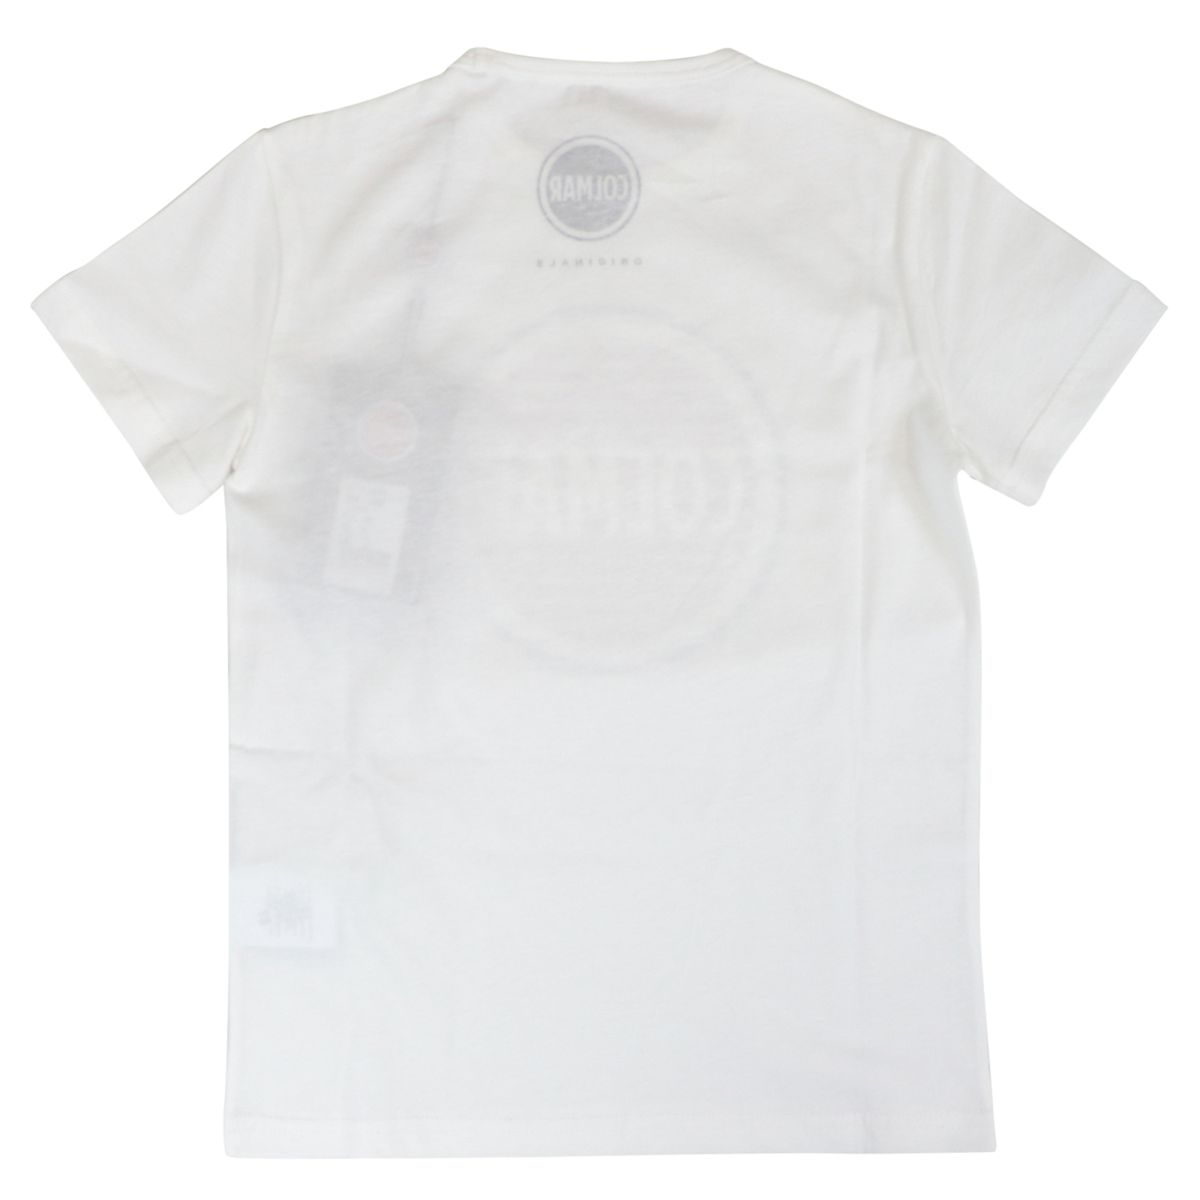 Crew neck t-shirt in cotton jersey with maxi printed logo White Colmar